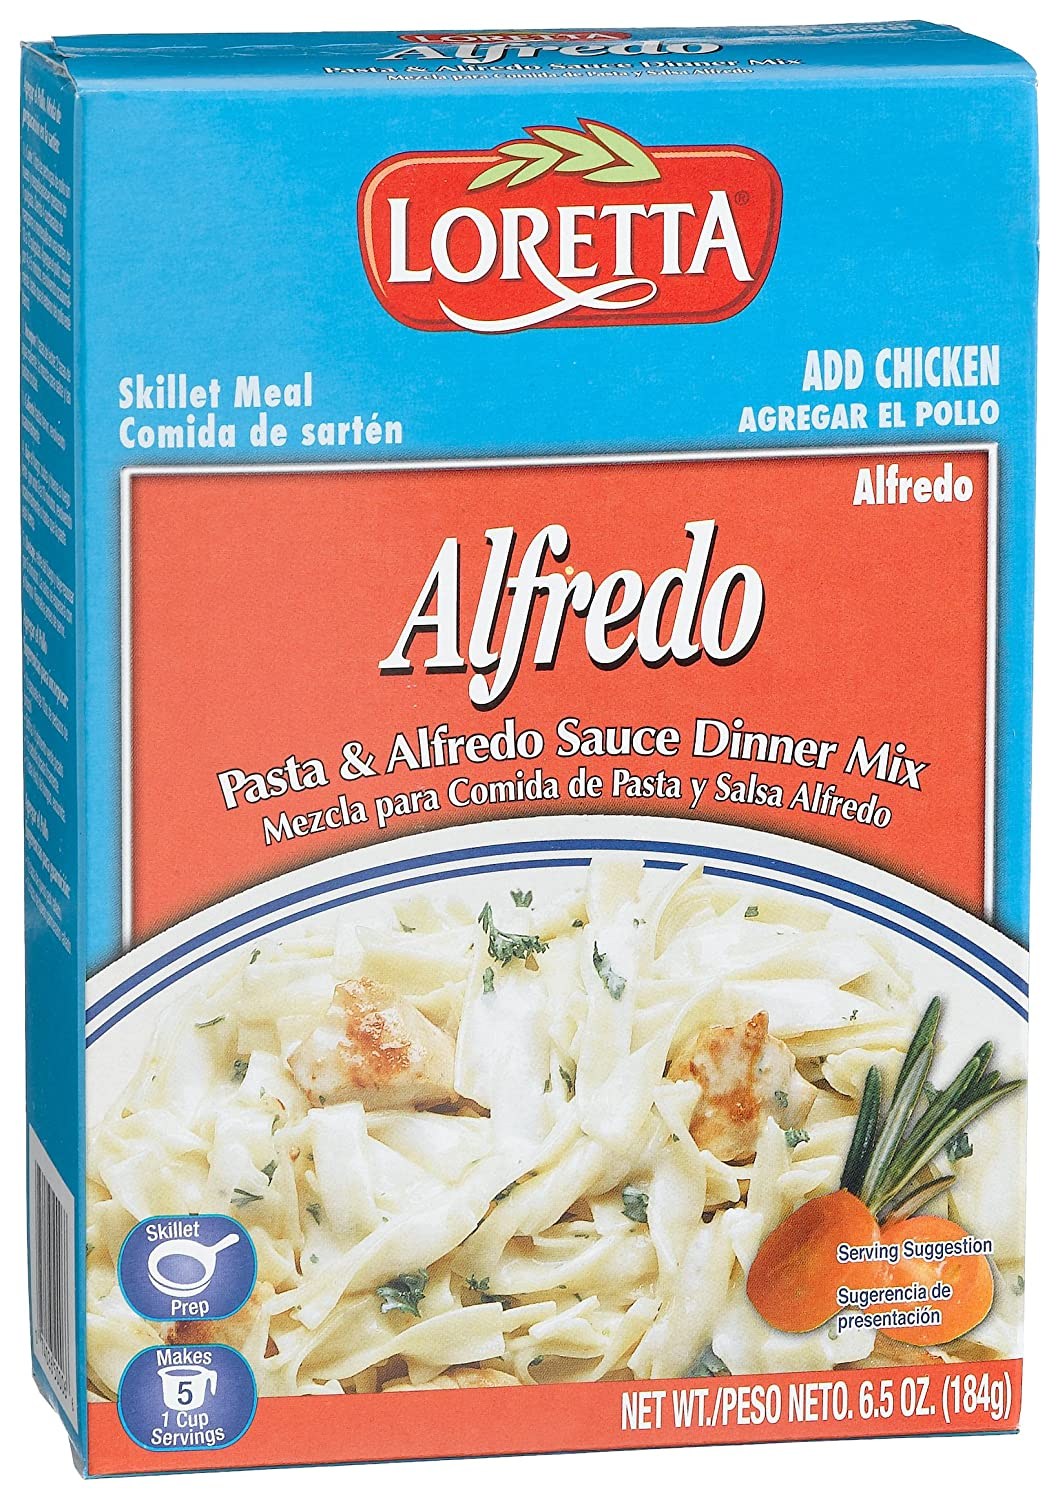 Amazon.com : Loretta Alfredo Chicken Skillet Dinner, 6.5 Ounce Boxes (Pack of 12) : Prepared Meat Dishes : Grocery & Gourmet Food